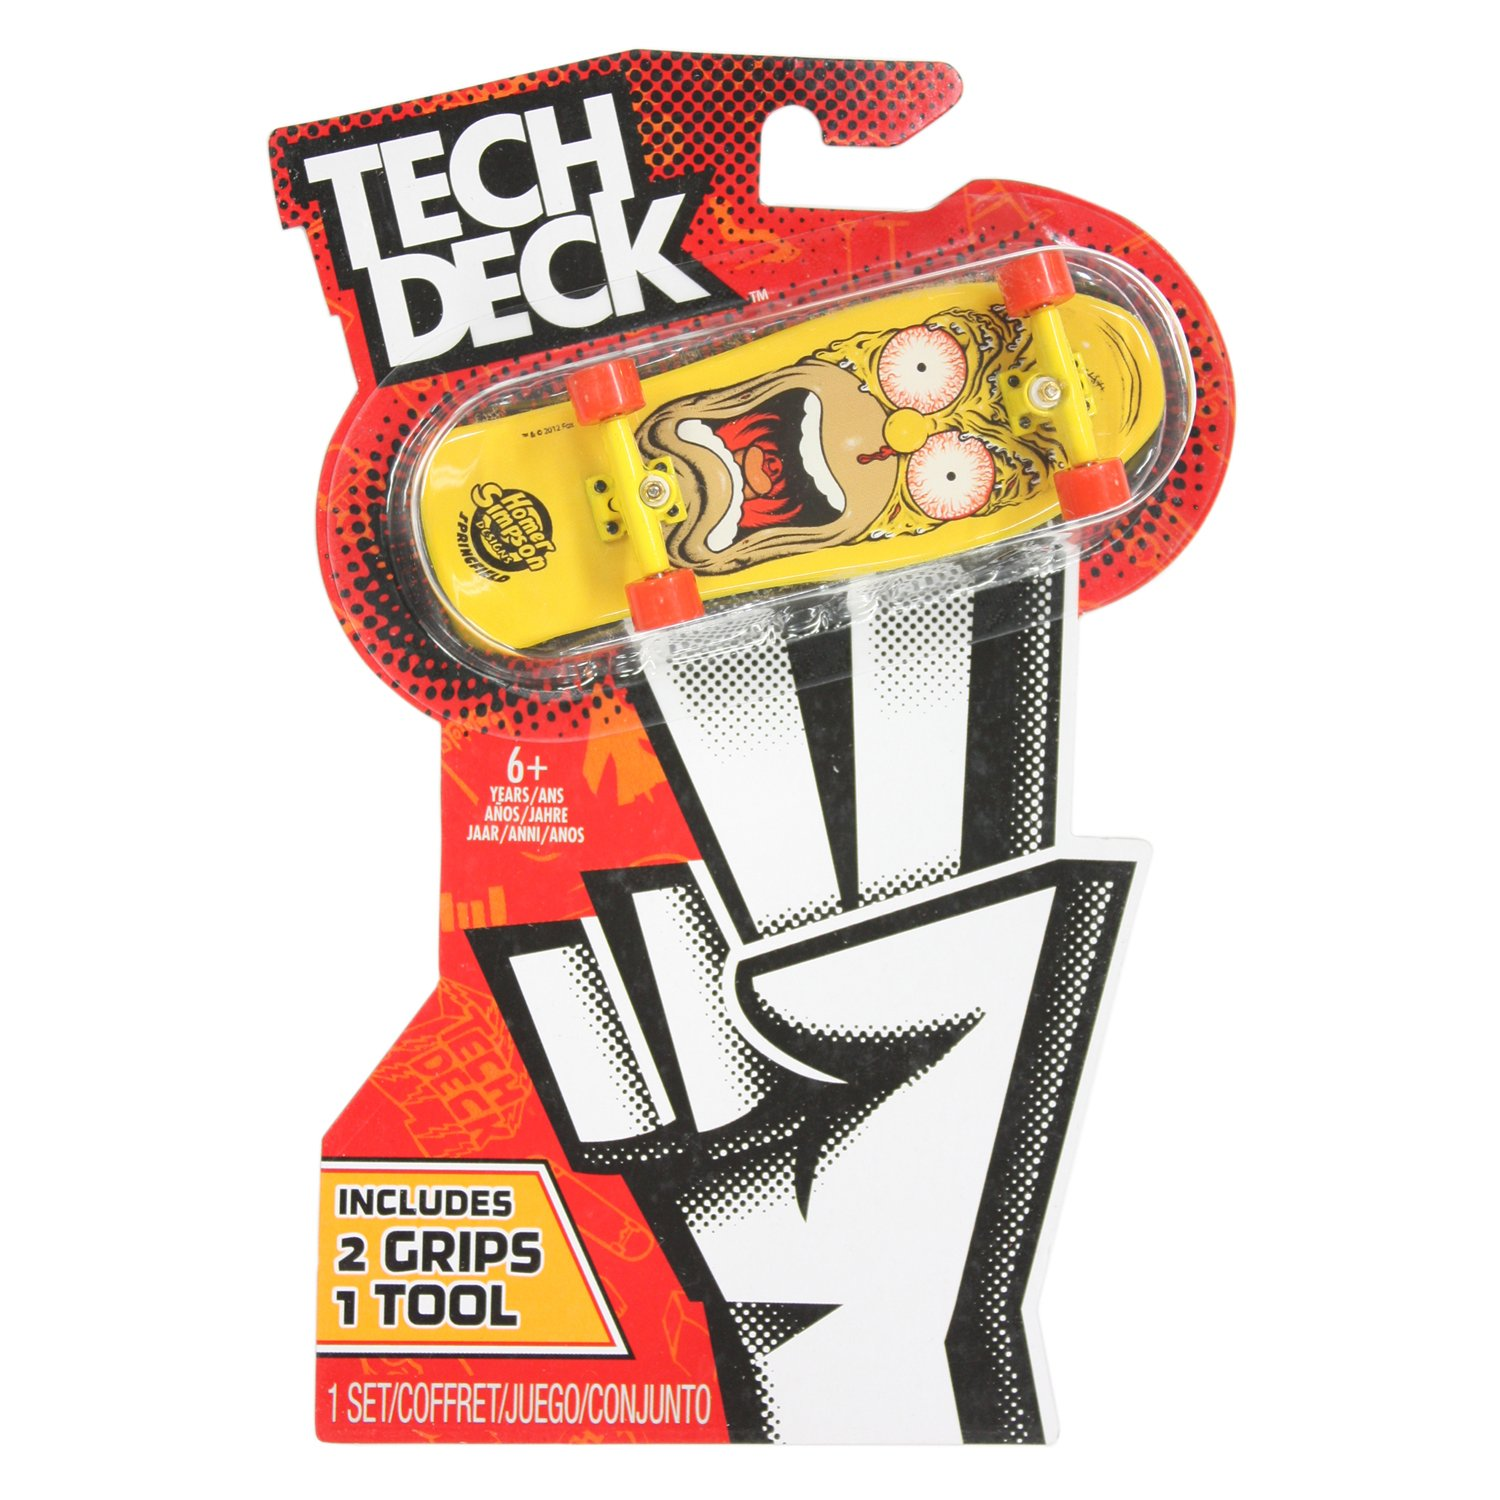 Spin Master TECH Deck (Tech Deck) 96mm / Santa Cruz / Simpsons Homer Face (Japan Import) by Spin Master